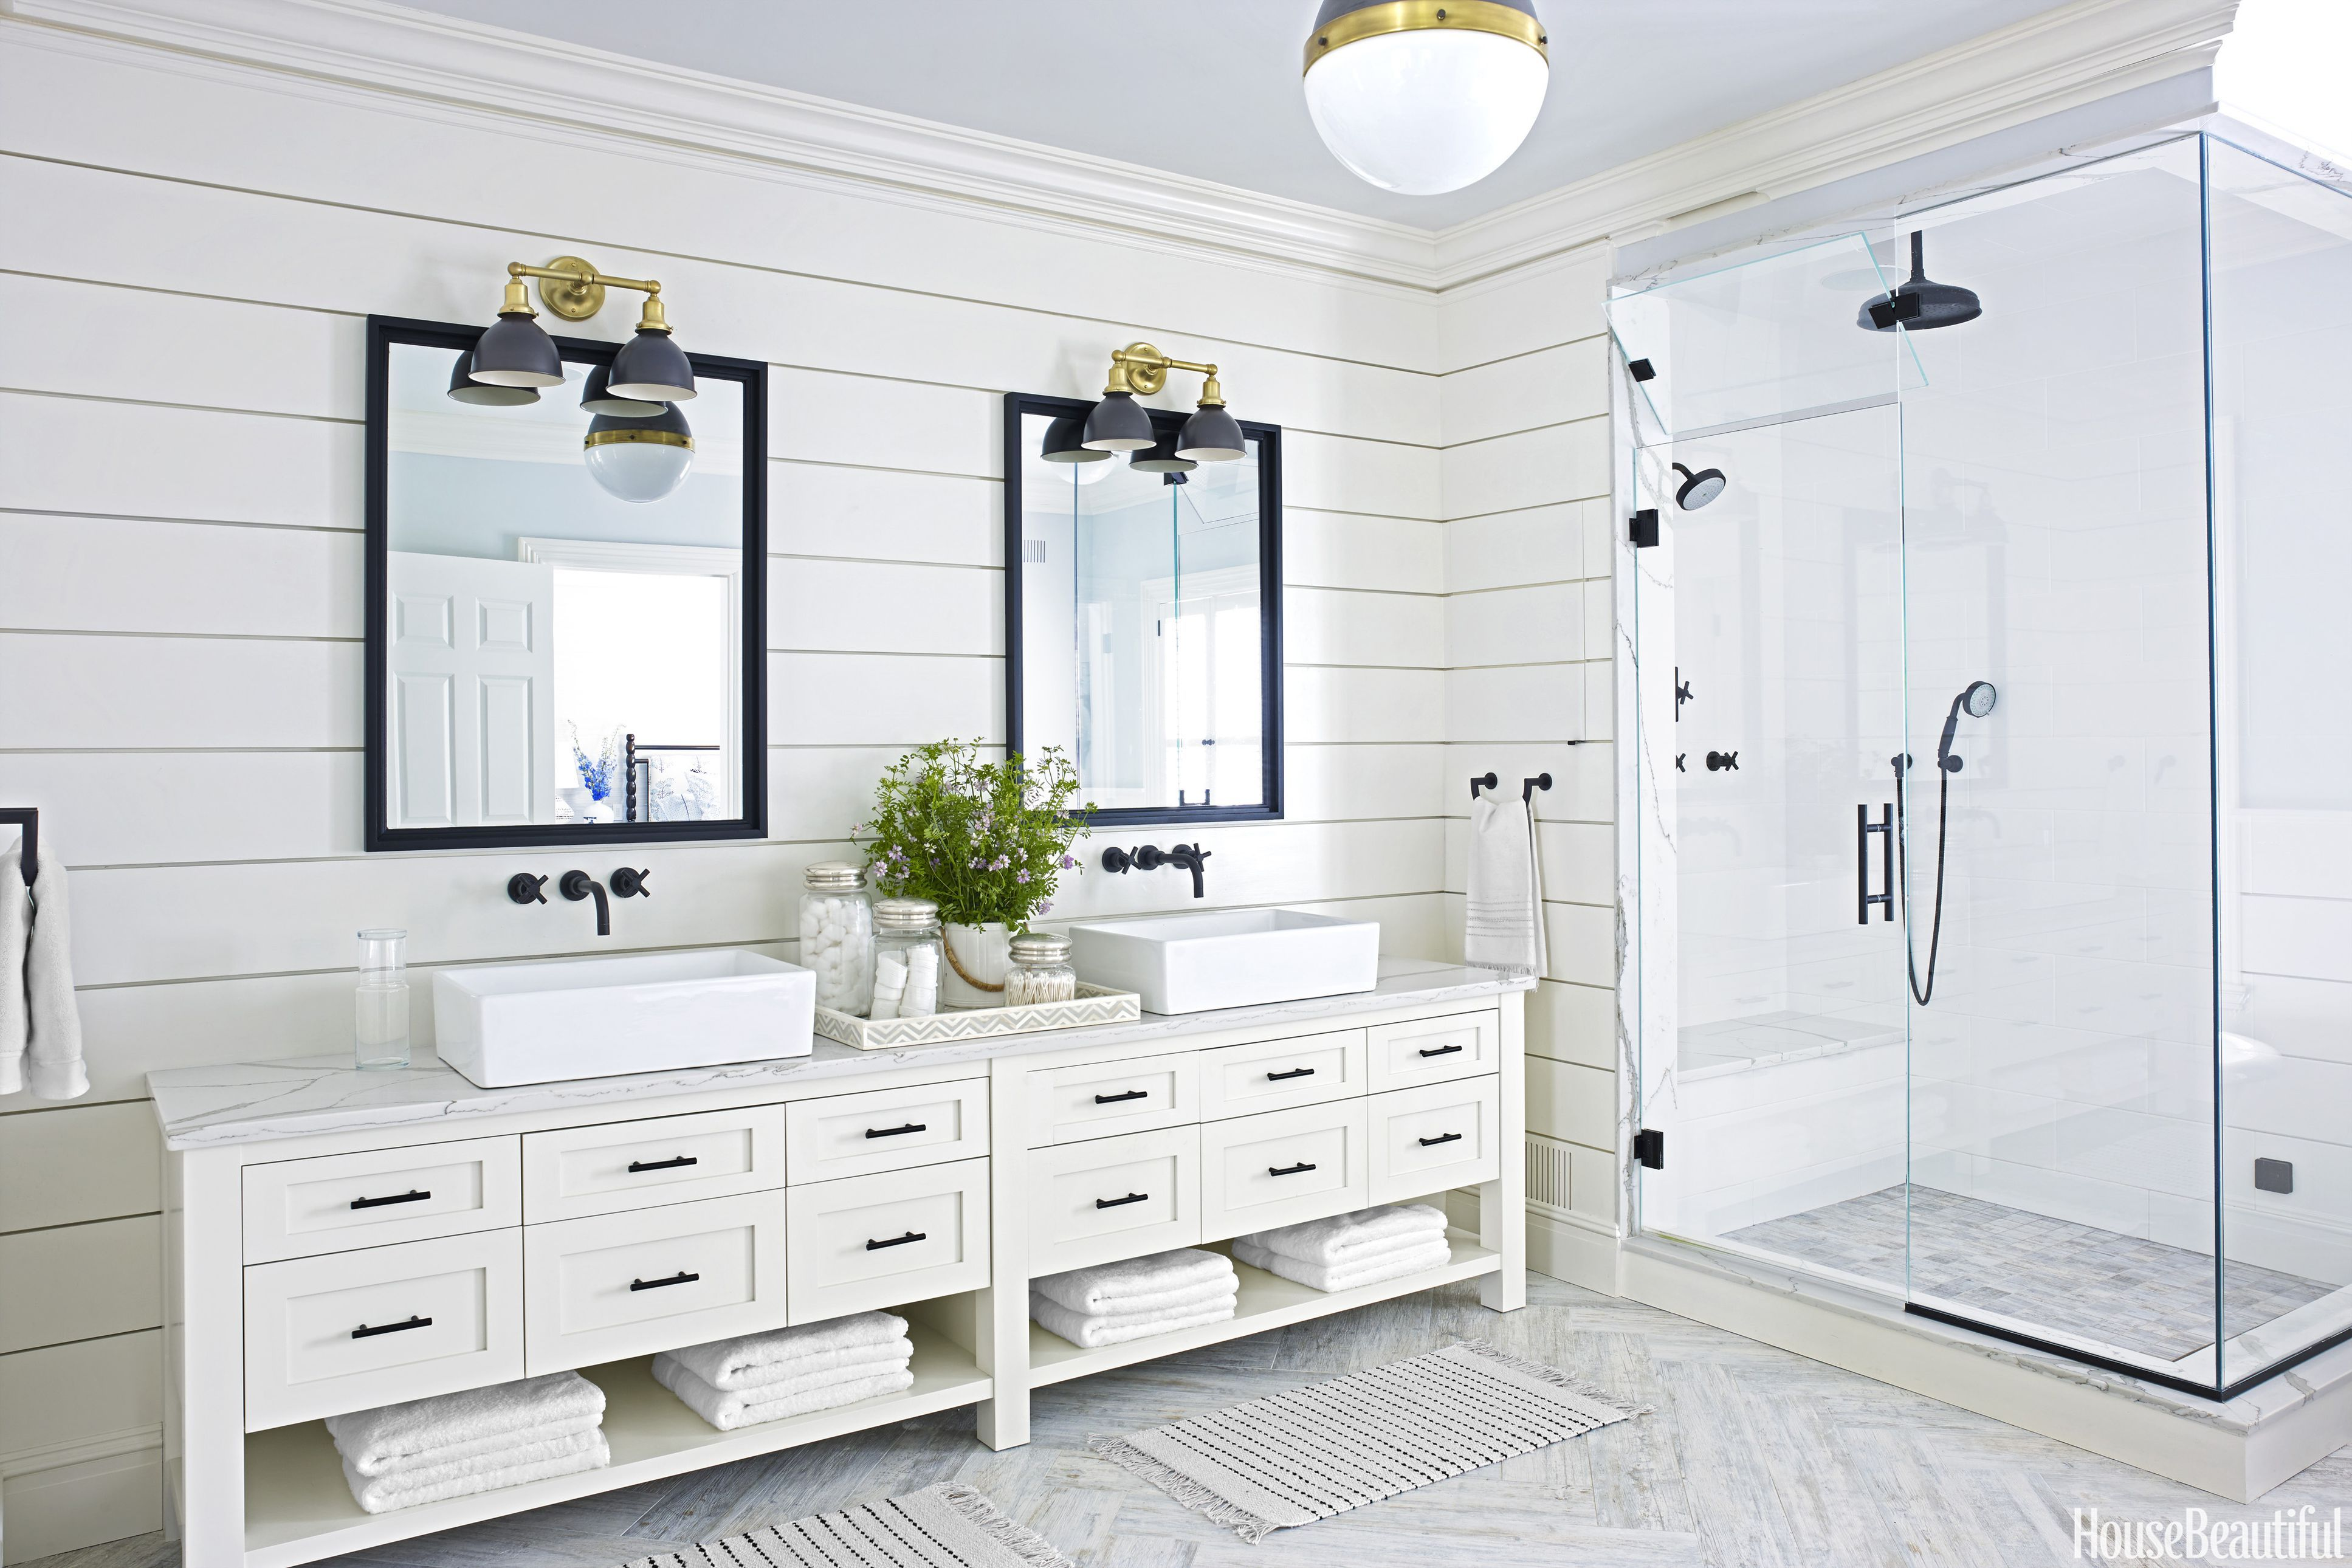 Charmant 15 Black And White Bathrooms That Feel Fresh And Luxurious